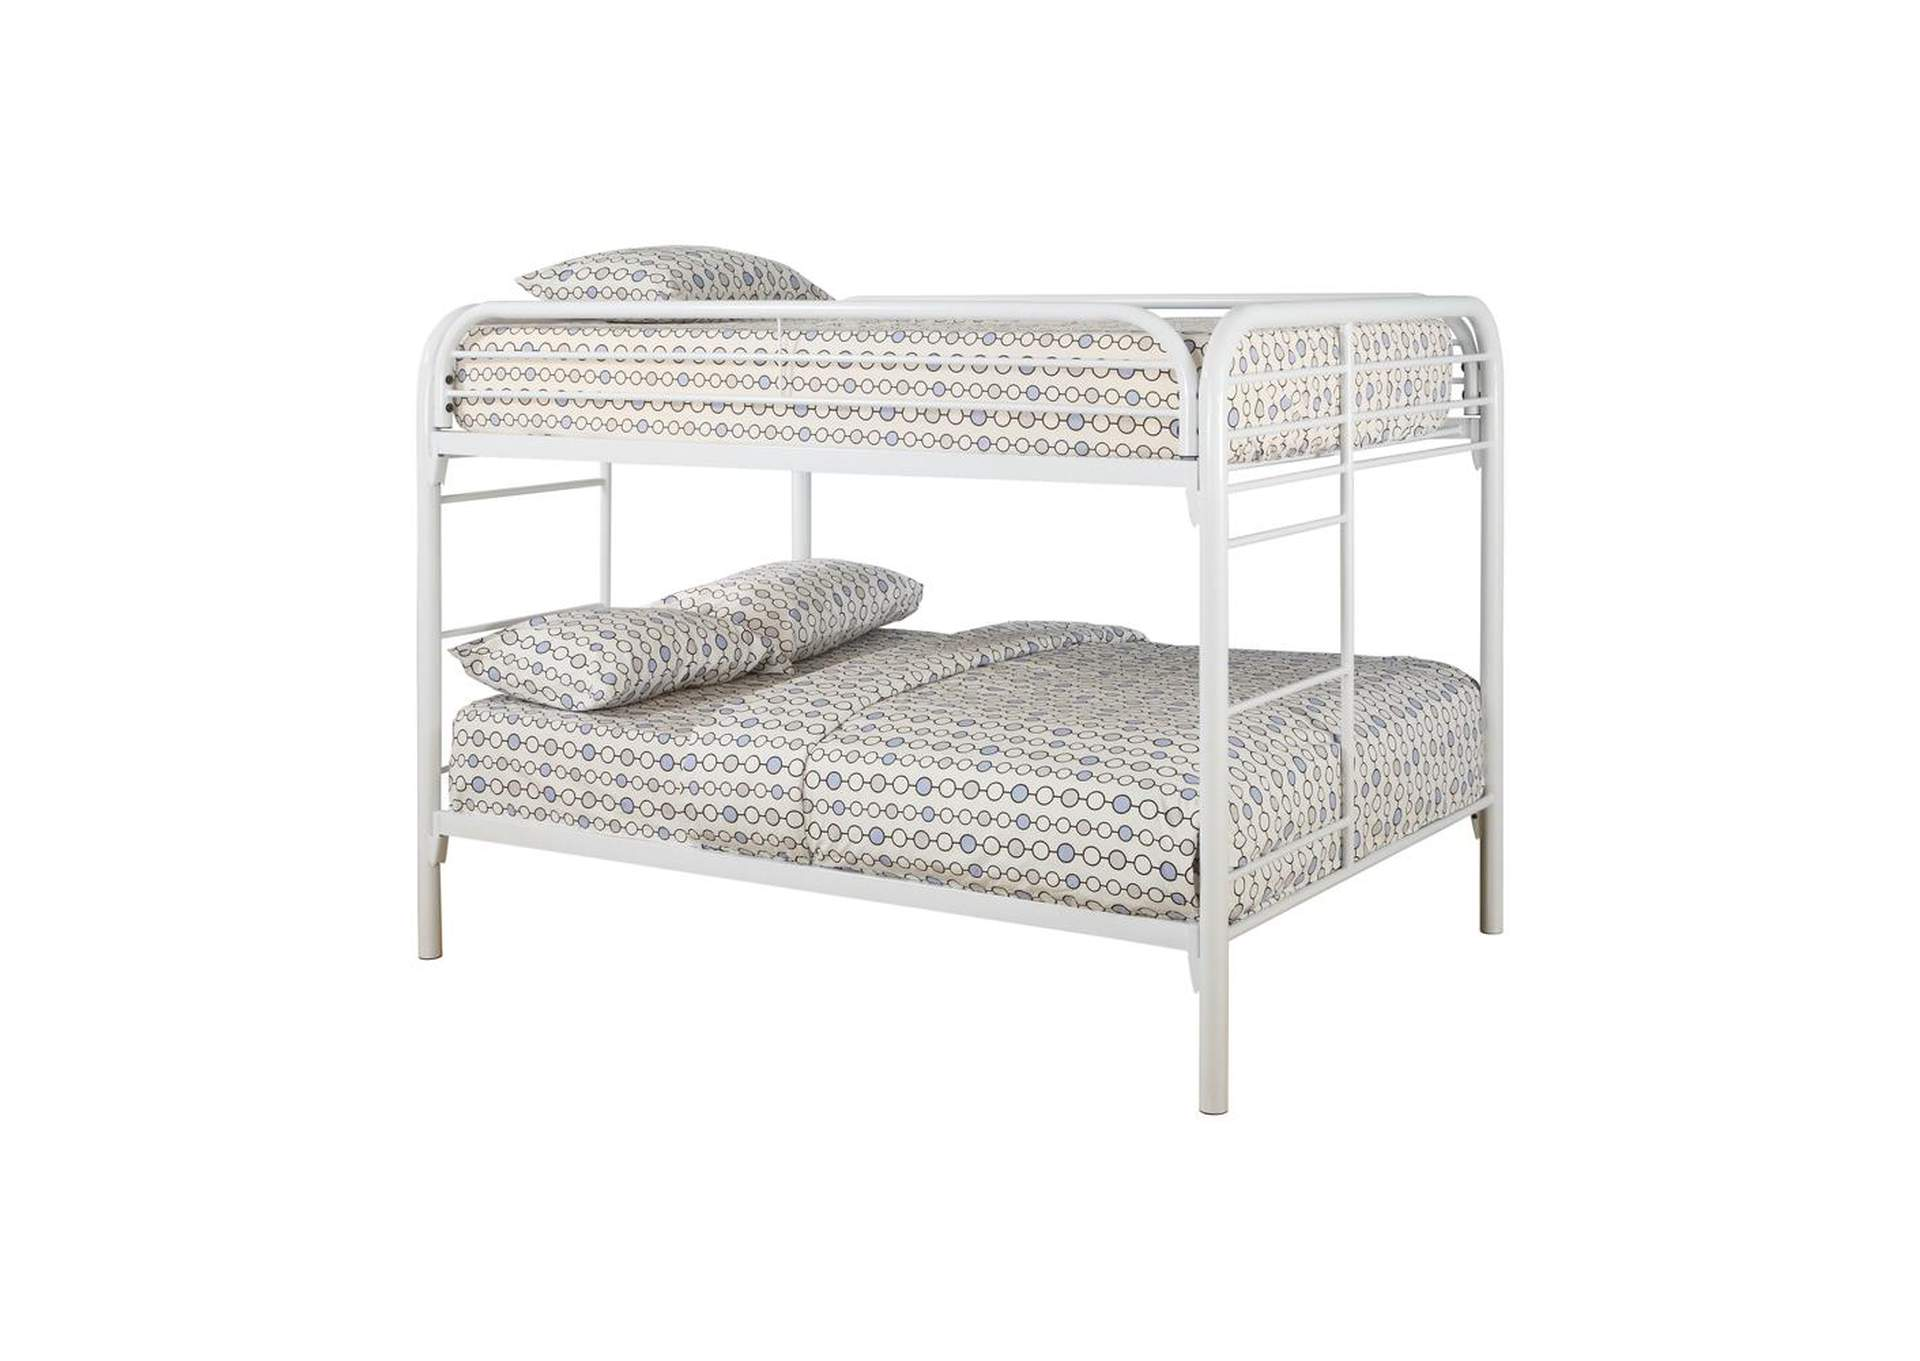 Gallery Fordham White Full-Over-Full Bunk Bed,Coaster Furniture